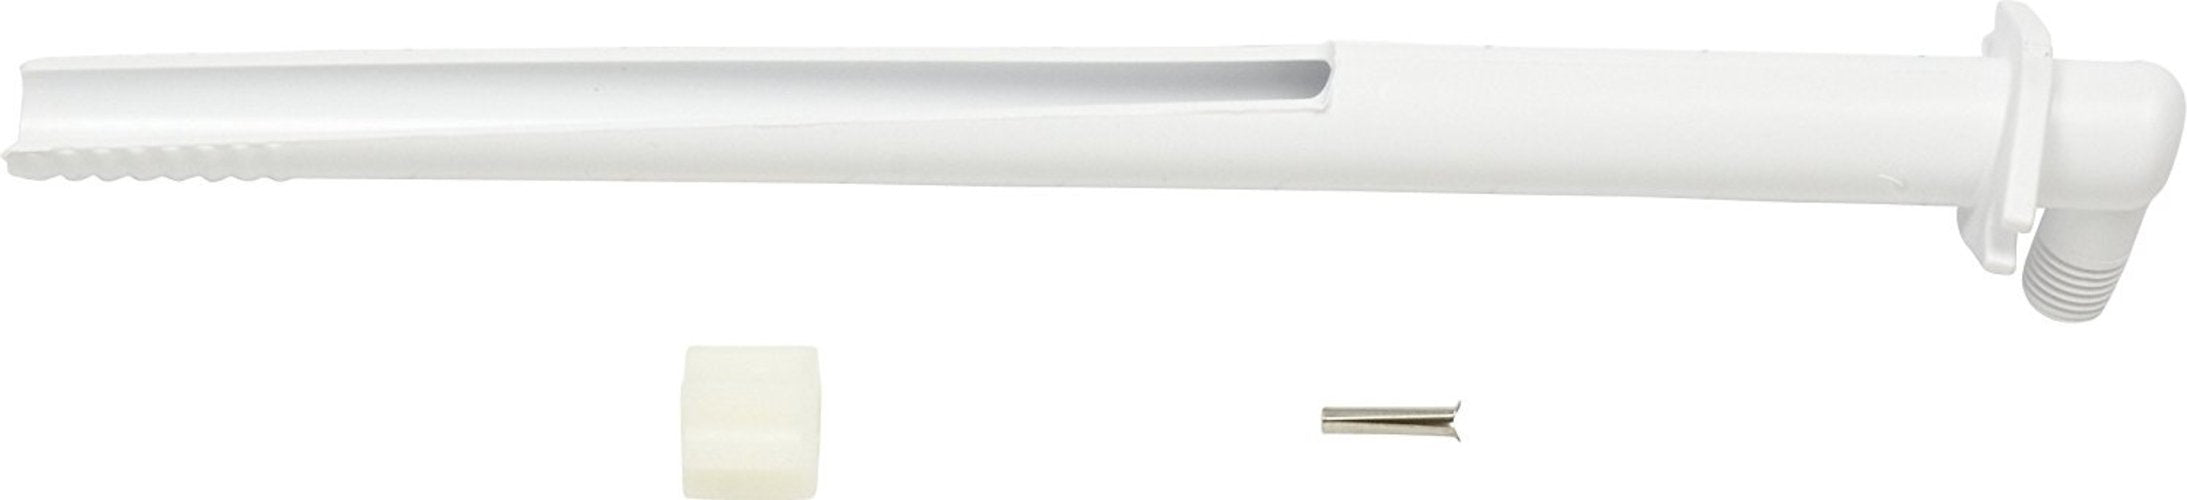 Whirlpool ET25PKXDW00 Icemaker Fill Tube Fitting Replacement